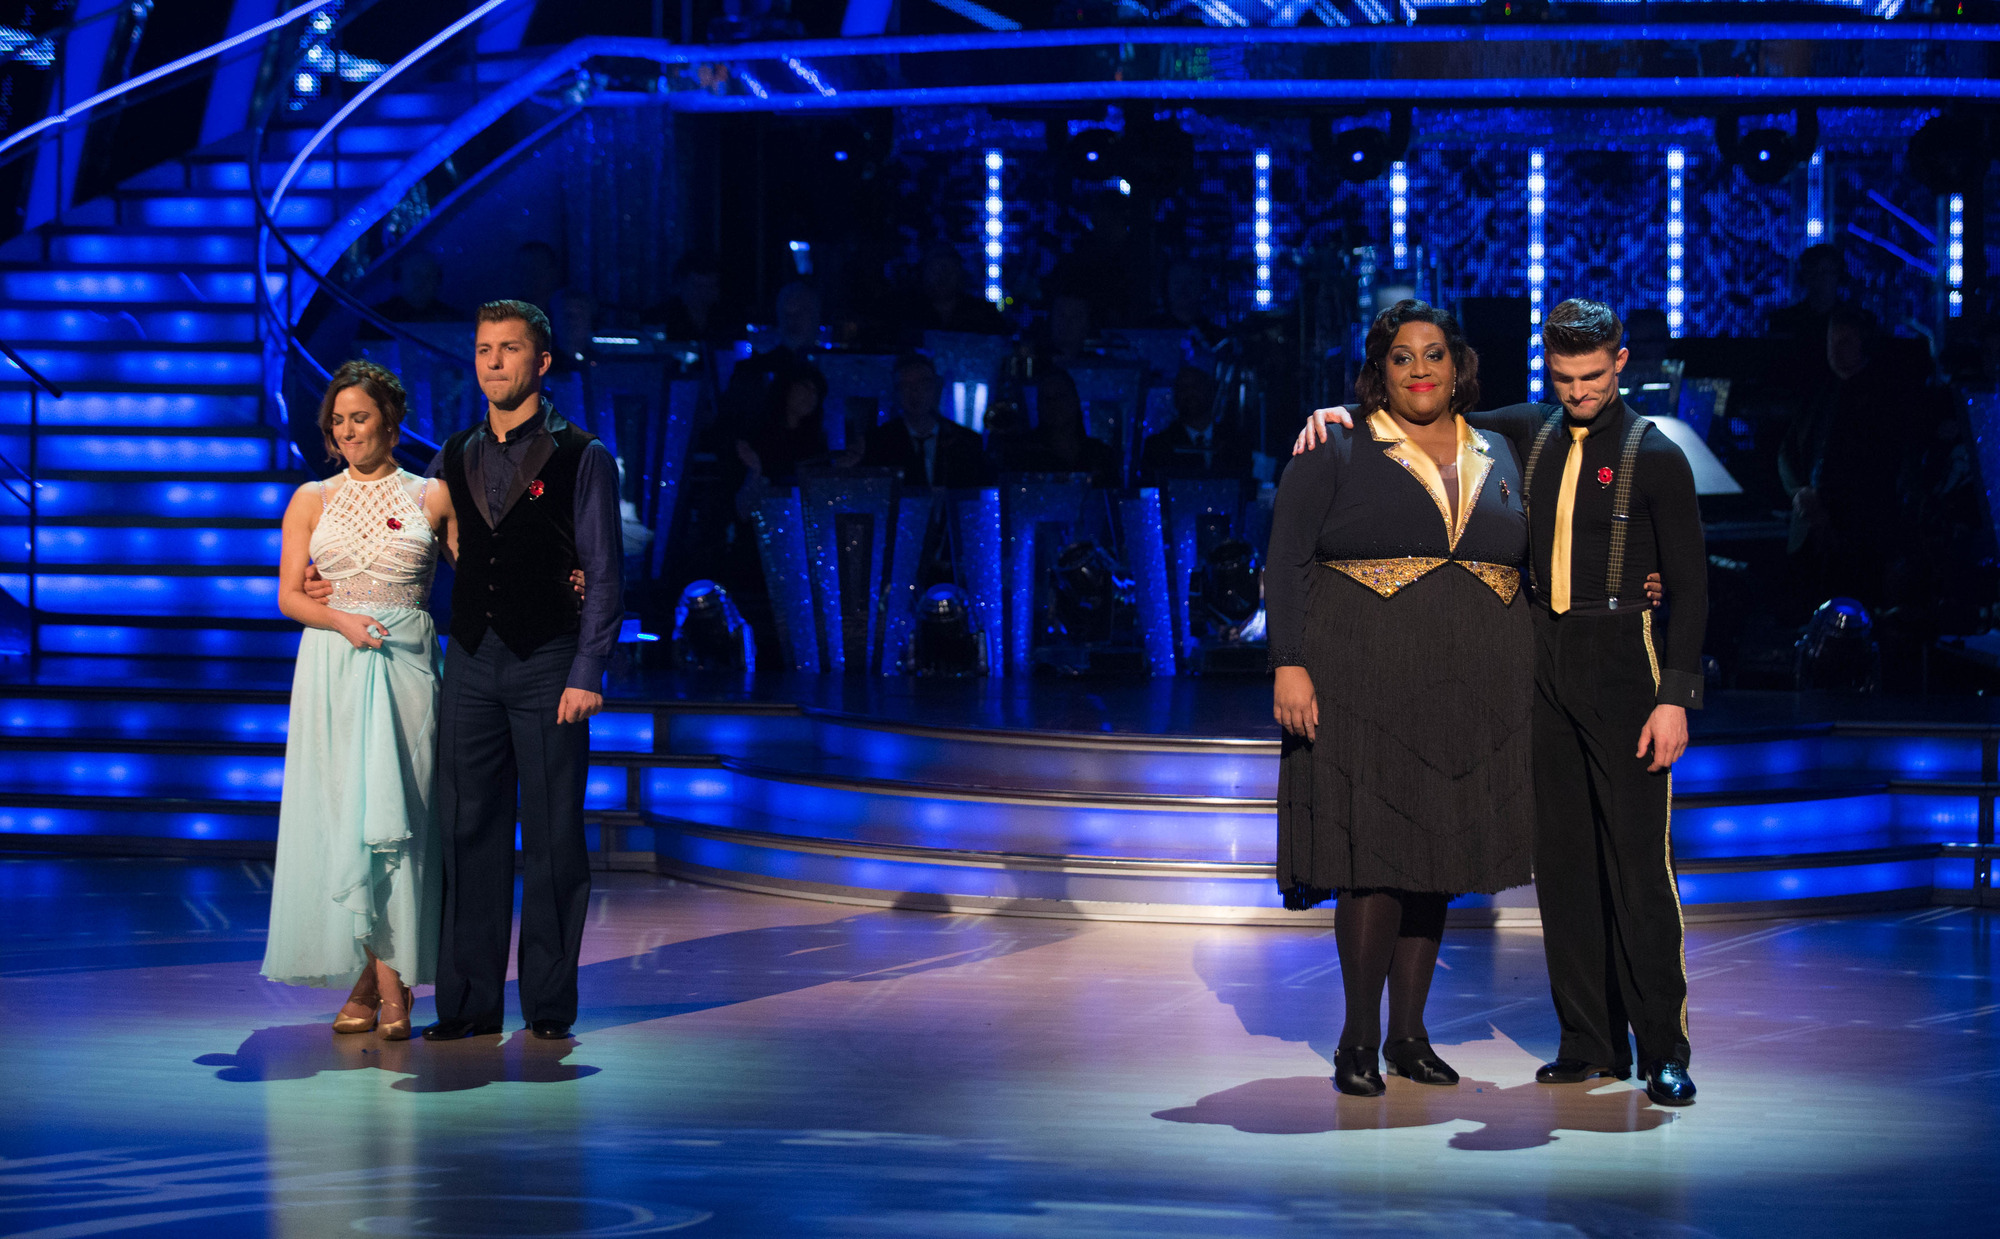 Strictly Come Dancing 2014 results: Alison Hammond and Caroline Flack end up in dance-off, but who left?